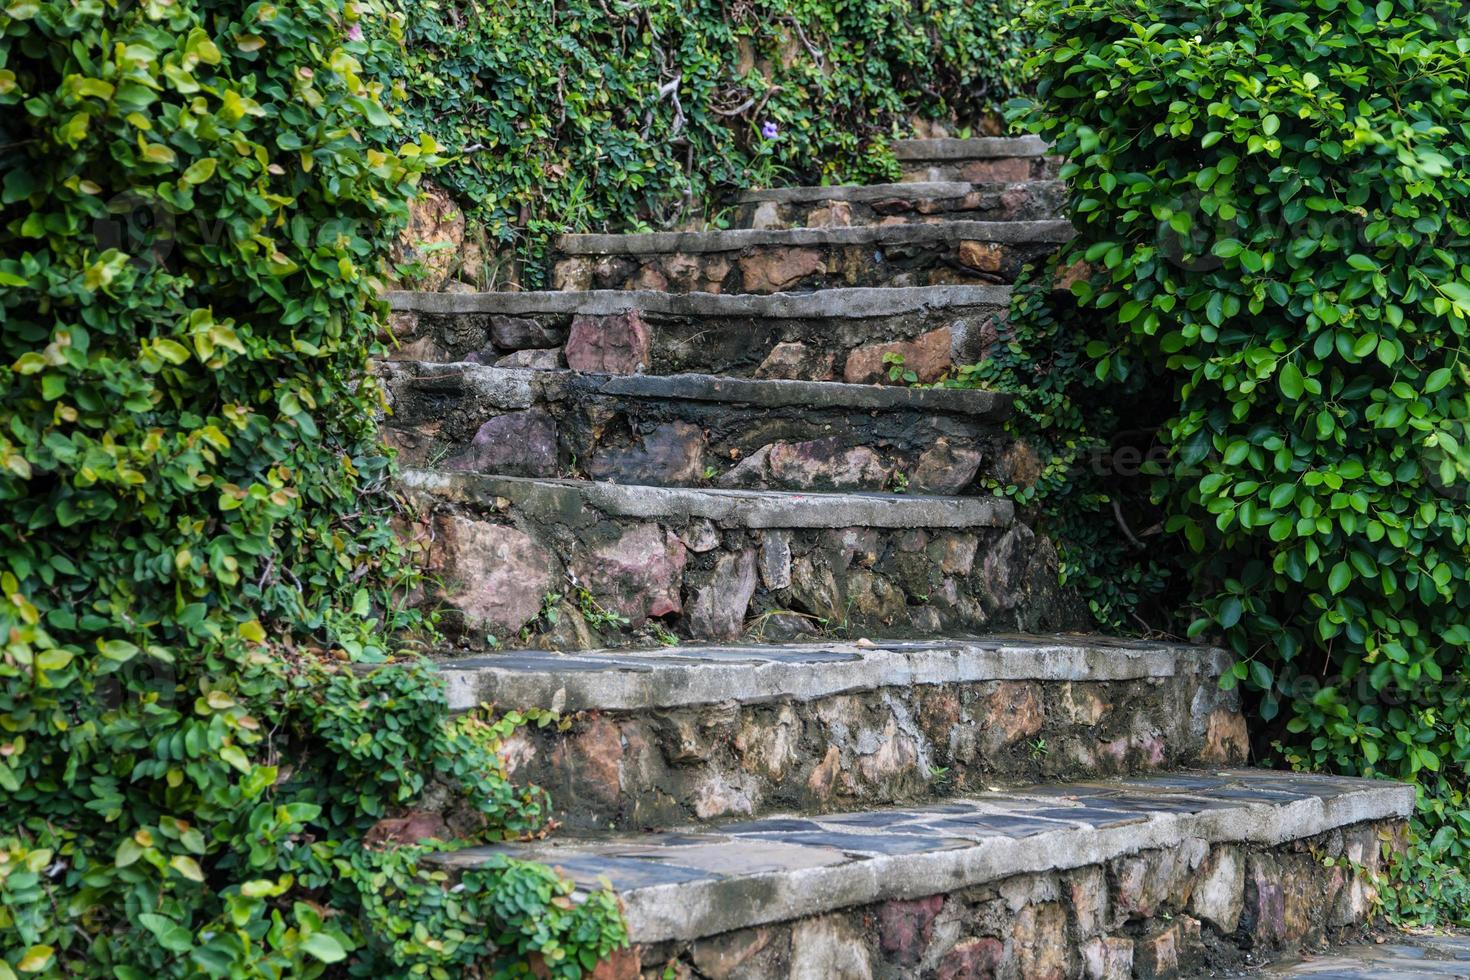 Old stone steps with greenery growing between and in crevices. photo